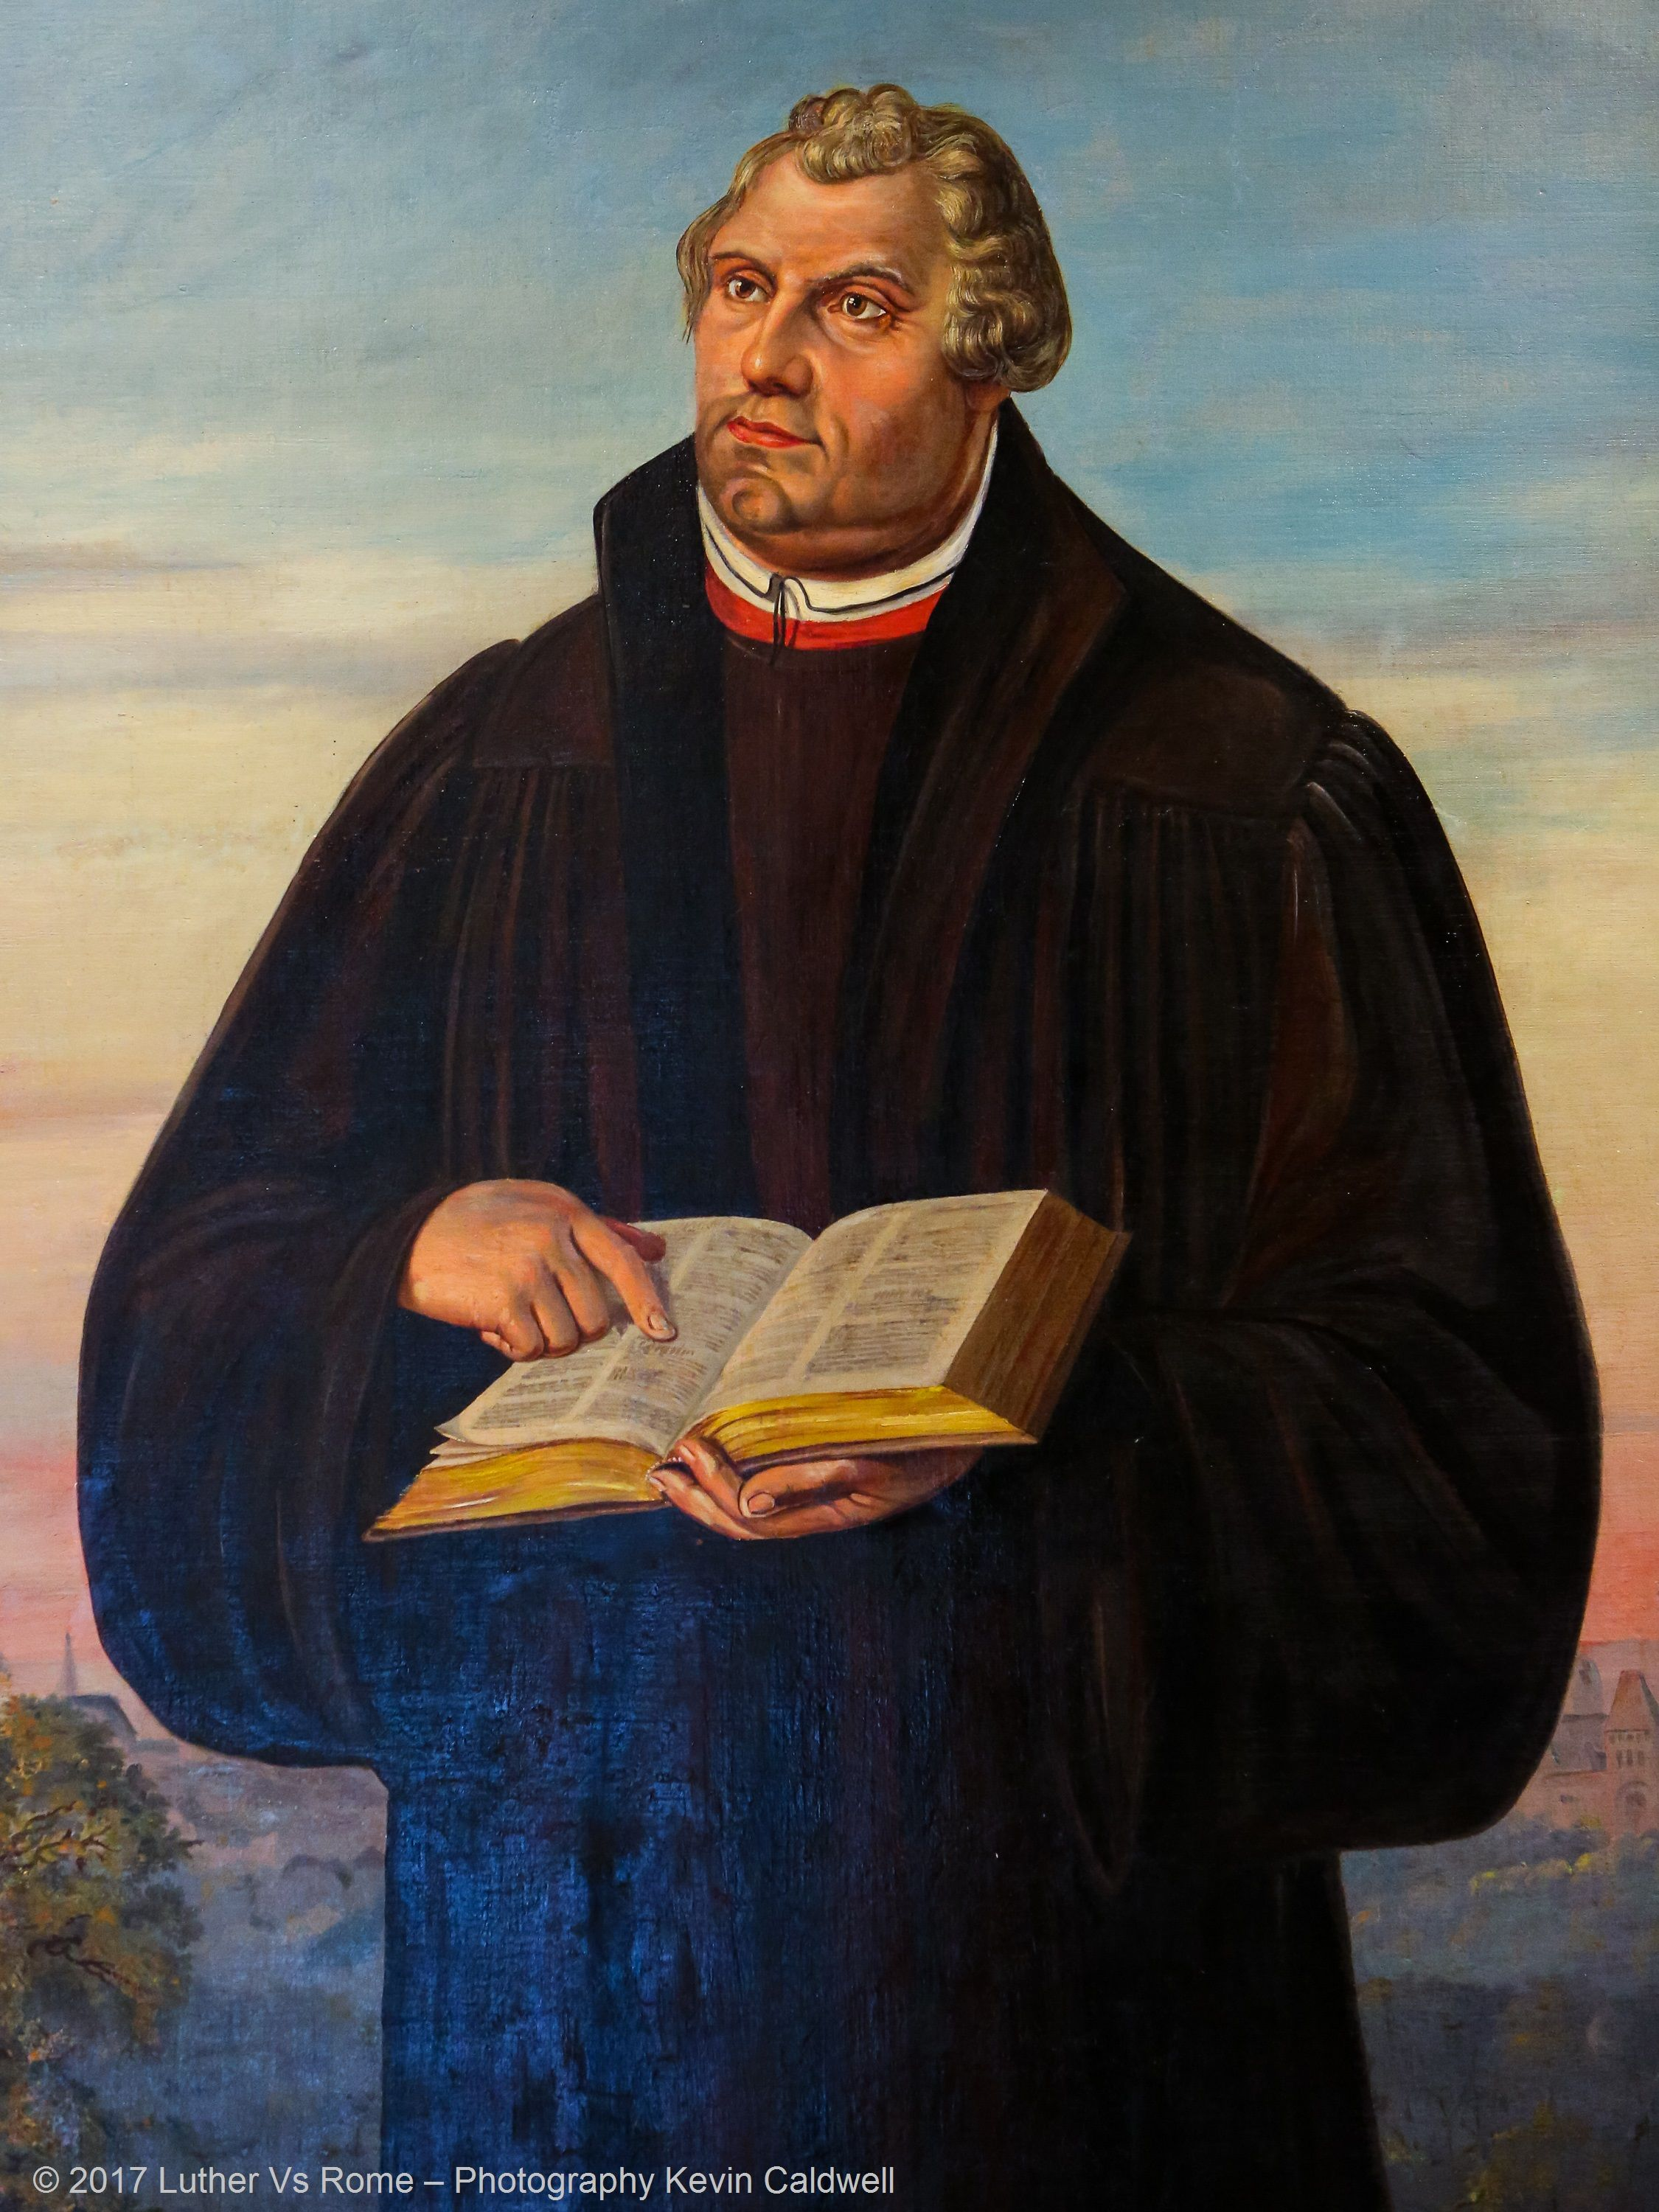 The Great Reformer Martin Luther